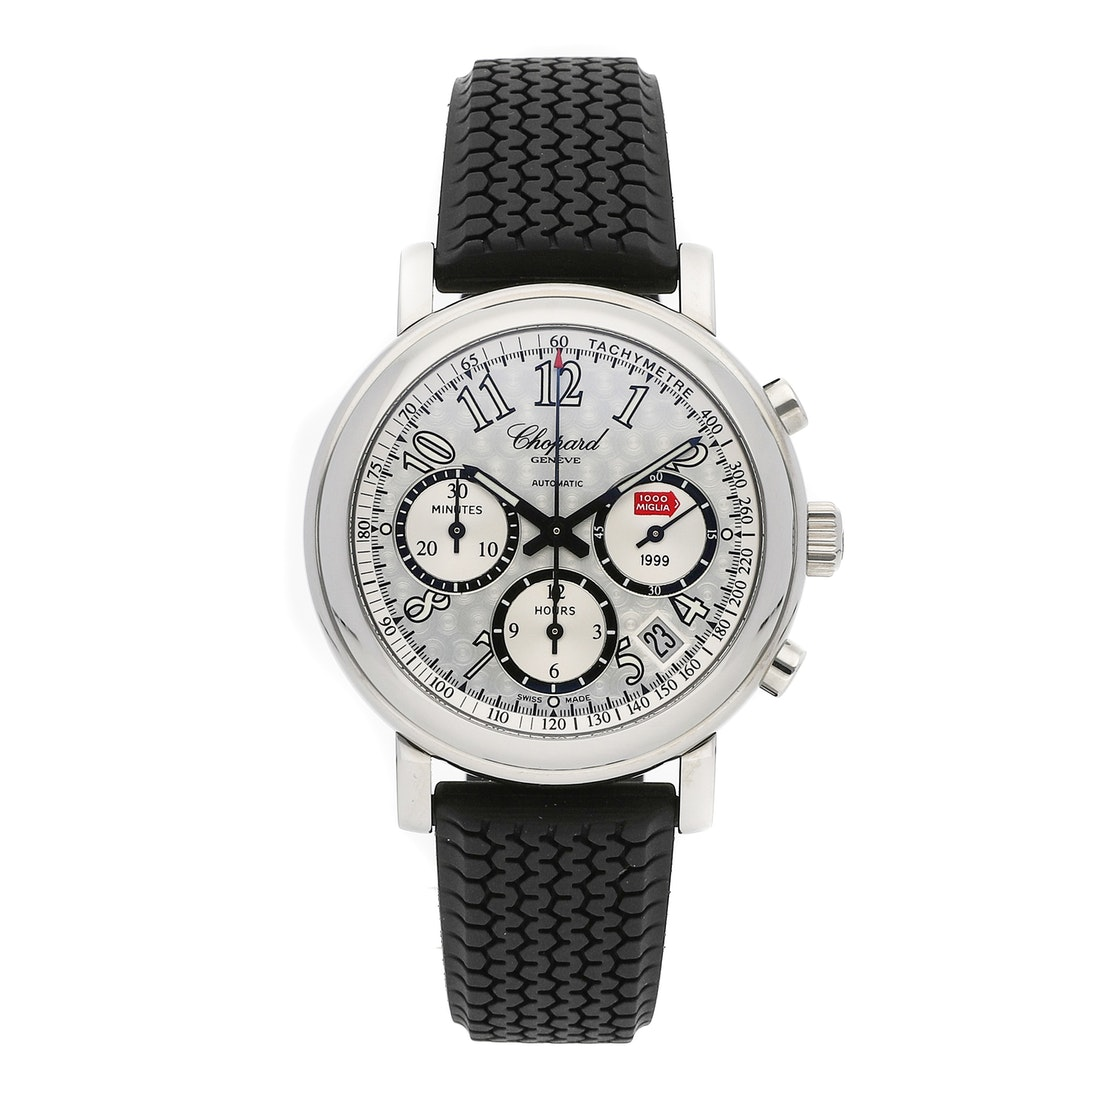 61463c1d9 Chopard Mille Miglia Chronograph Limited Edition 16/8331